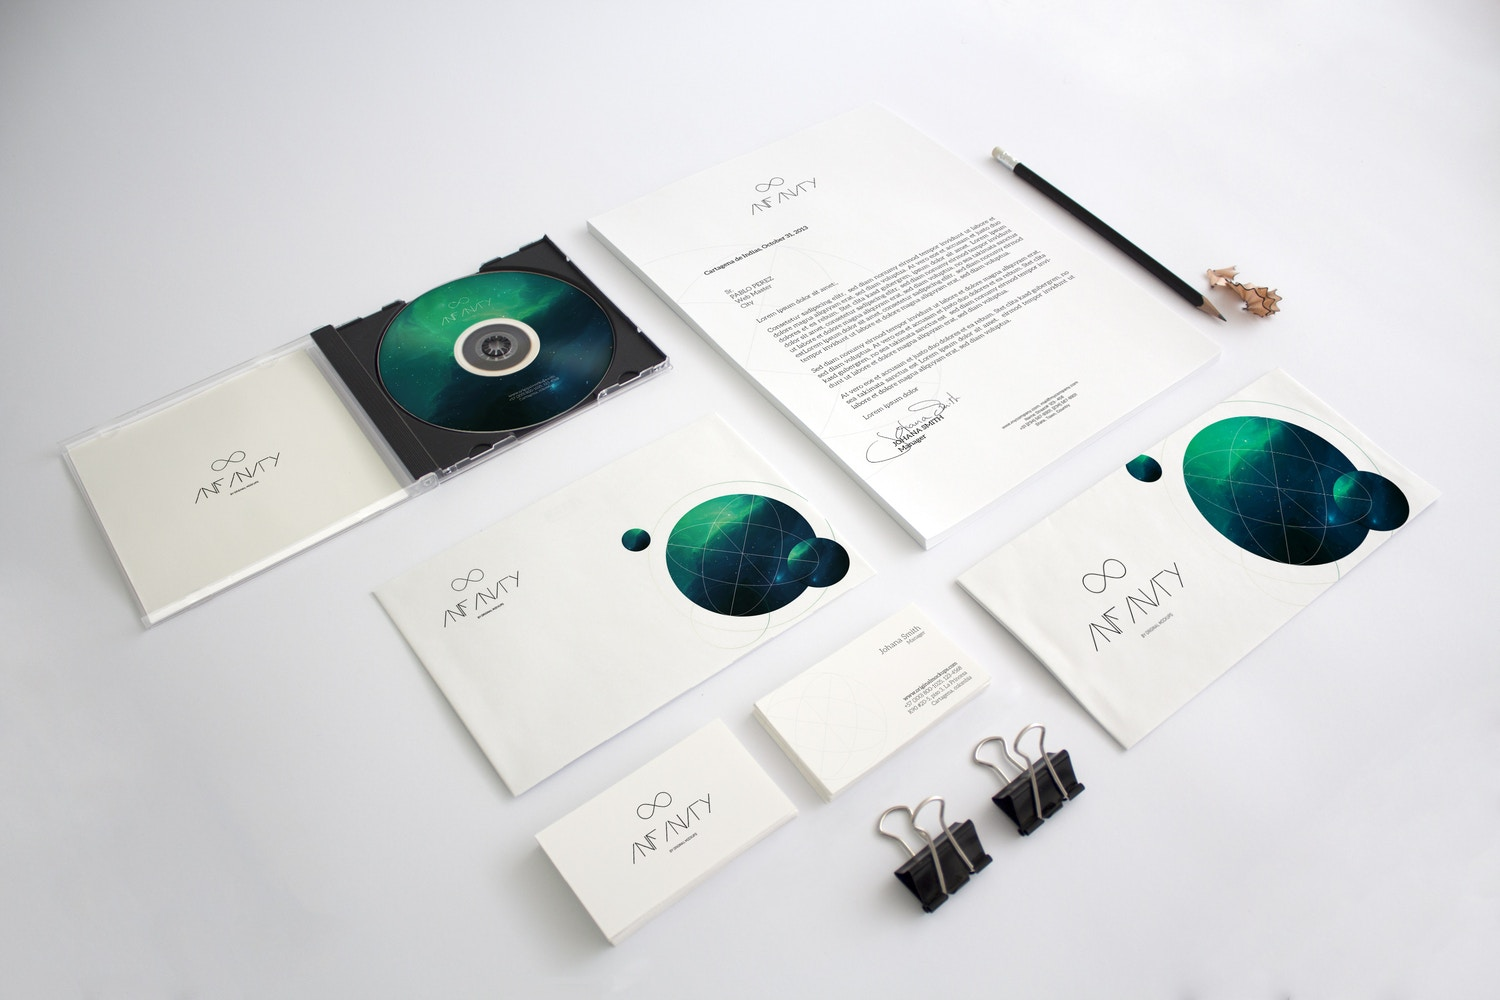 Stationery Mockup 3 by Original Mockups on Original Mockups